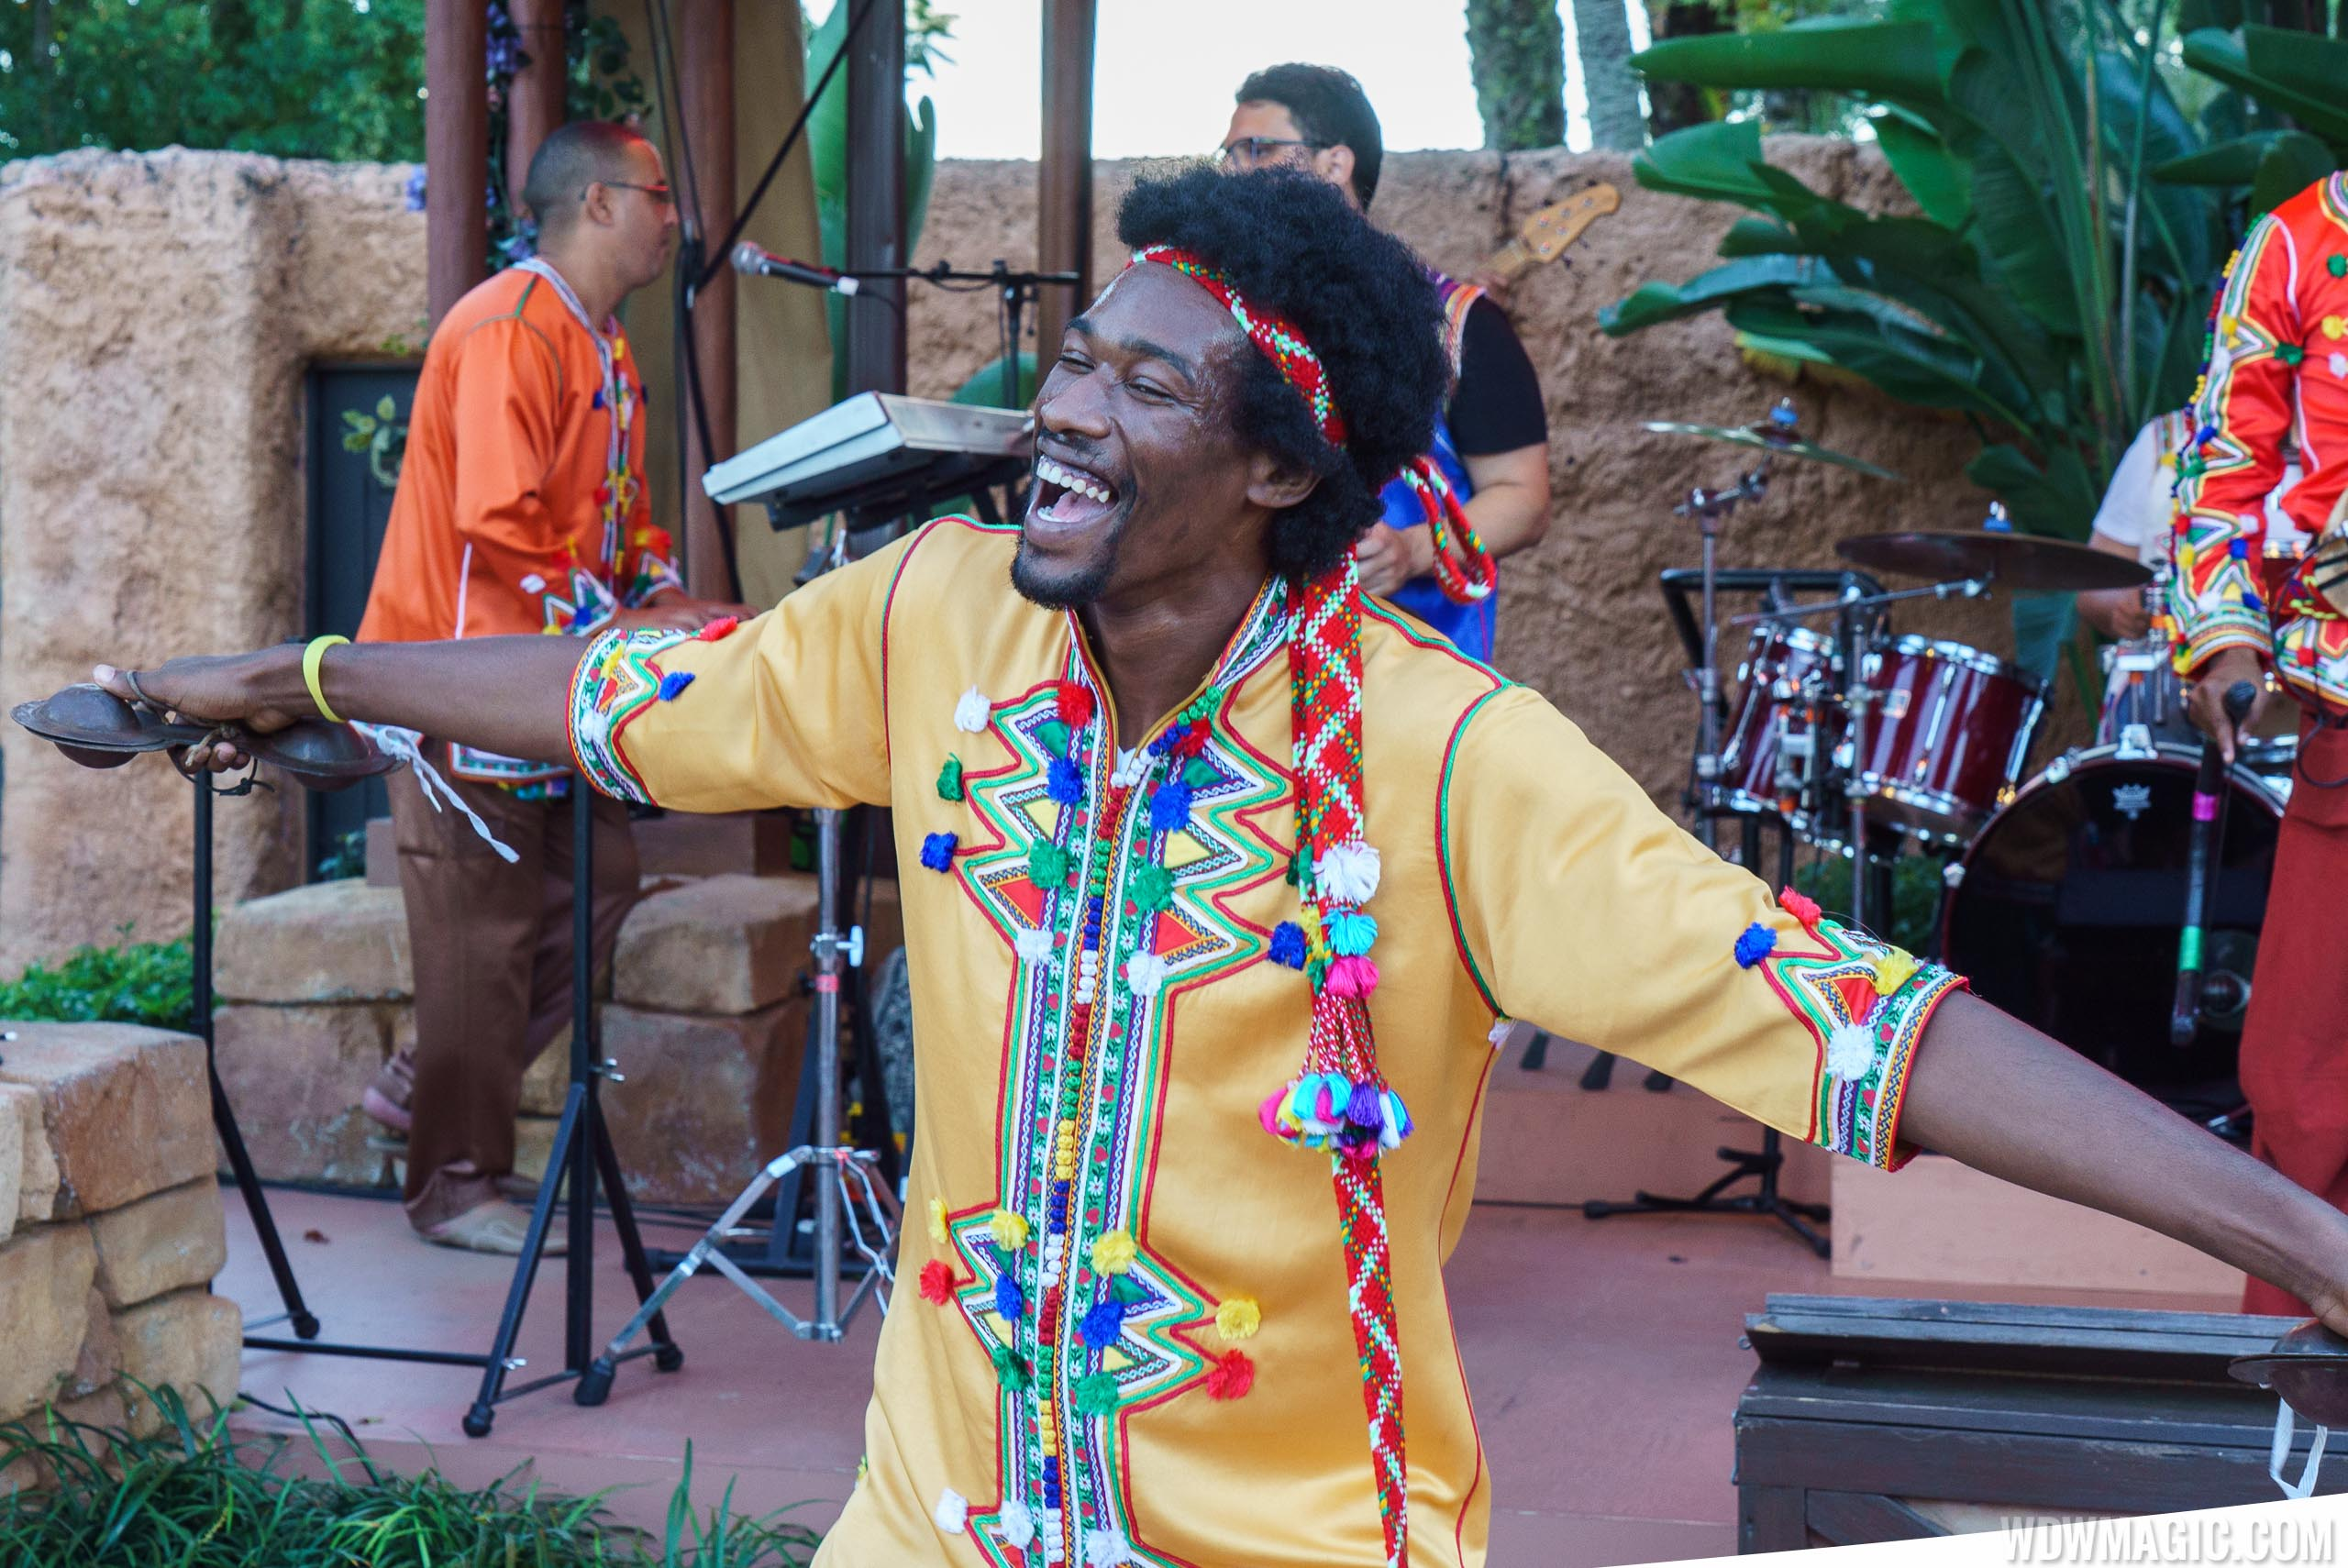 Ribab Fusion perform at Epcot's Morocco Pavilion